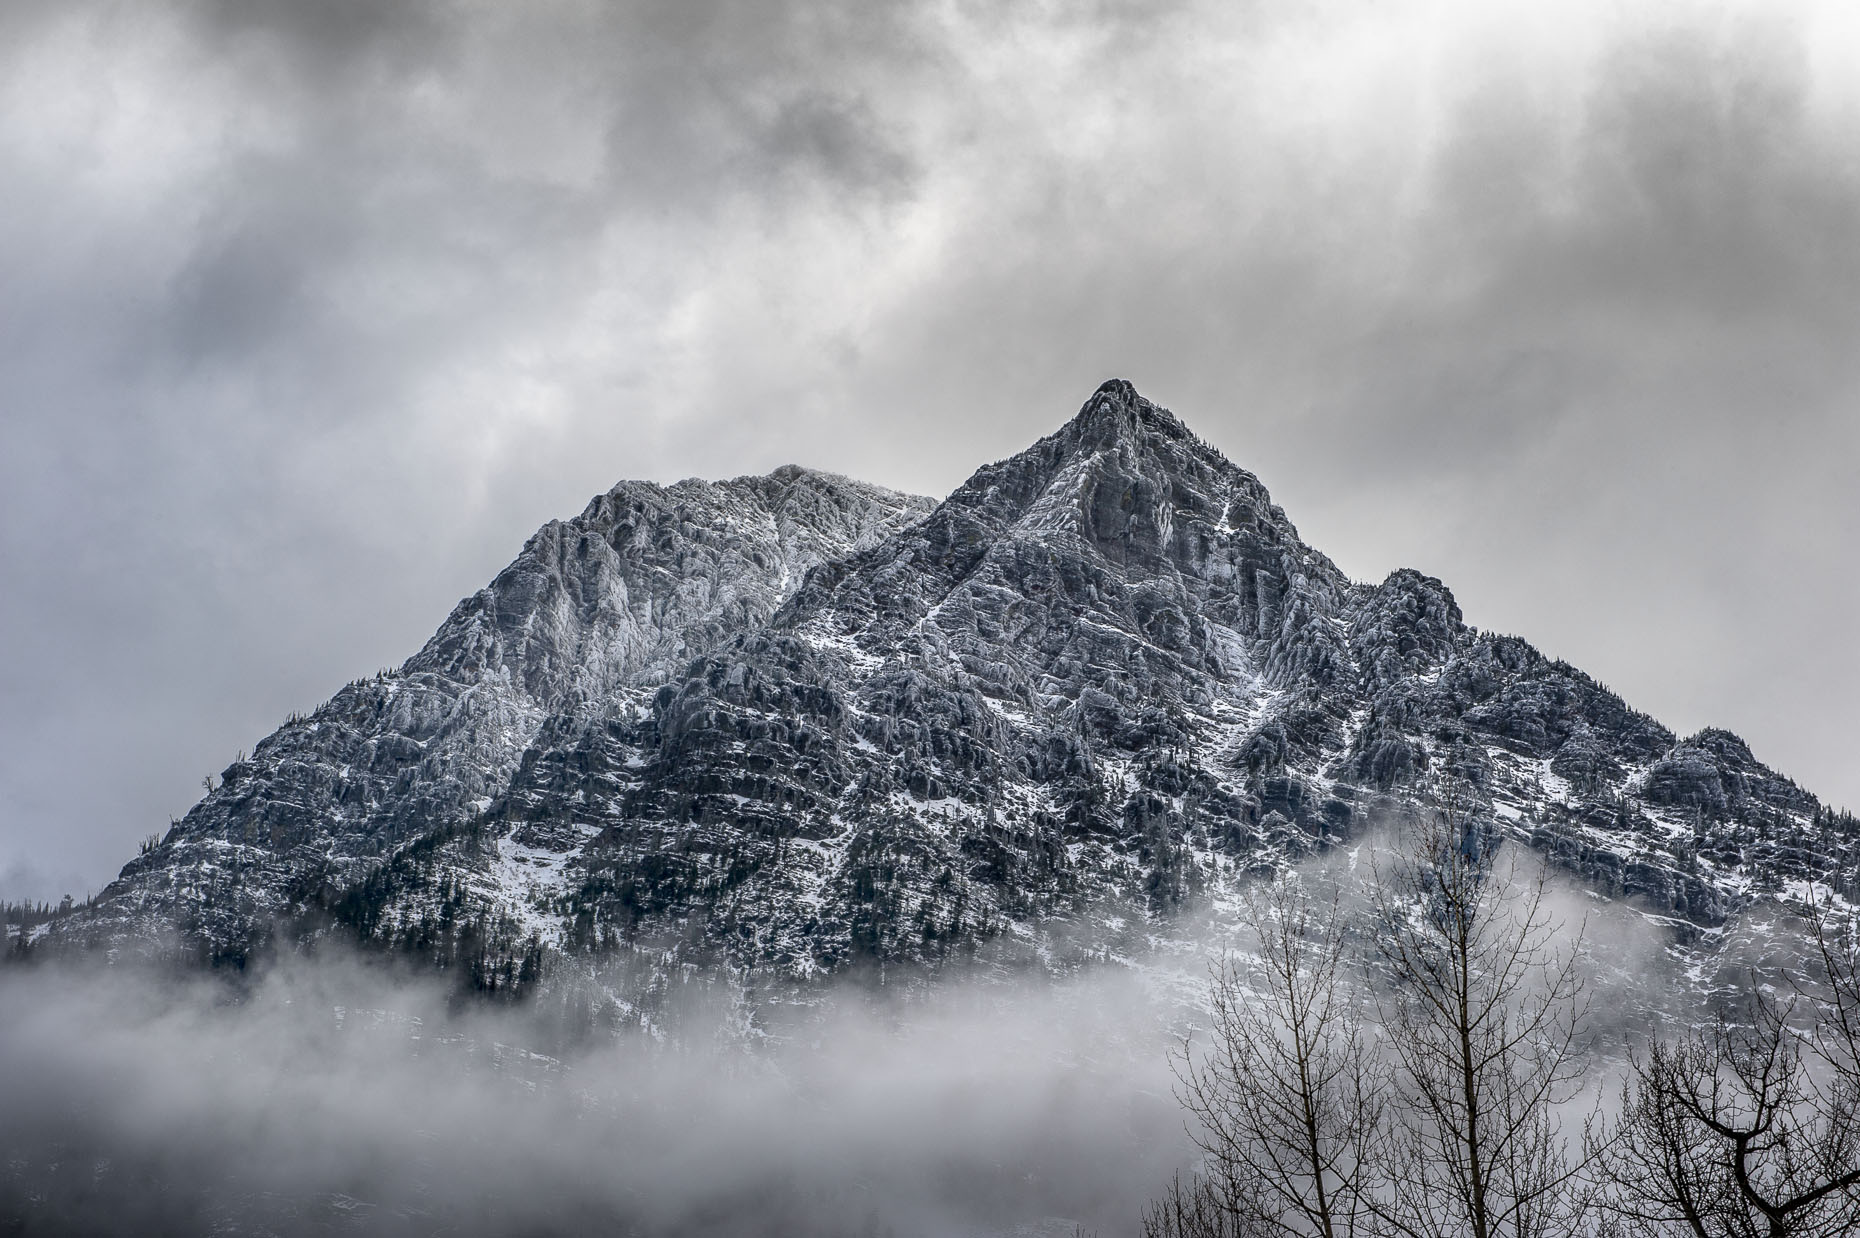 Image of granite peak in  snowy weather near mountain in Glacier National Park, WY.